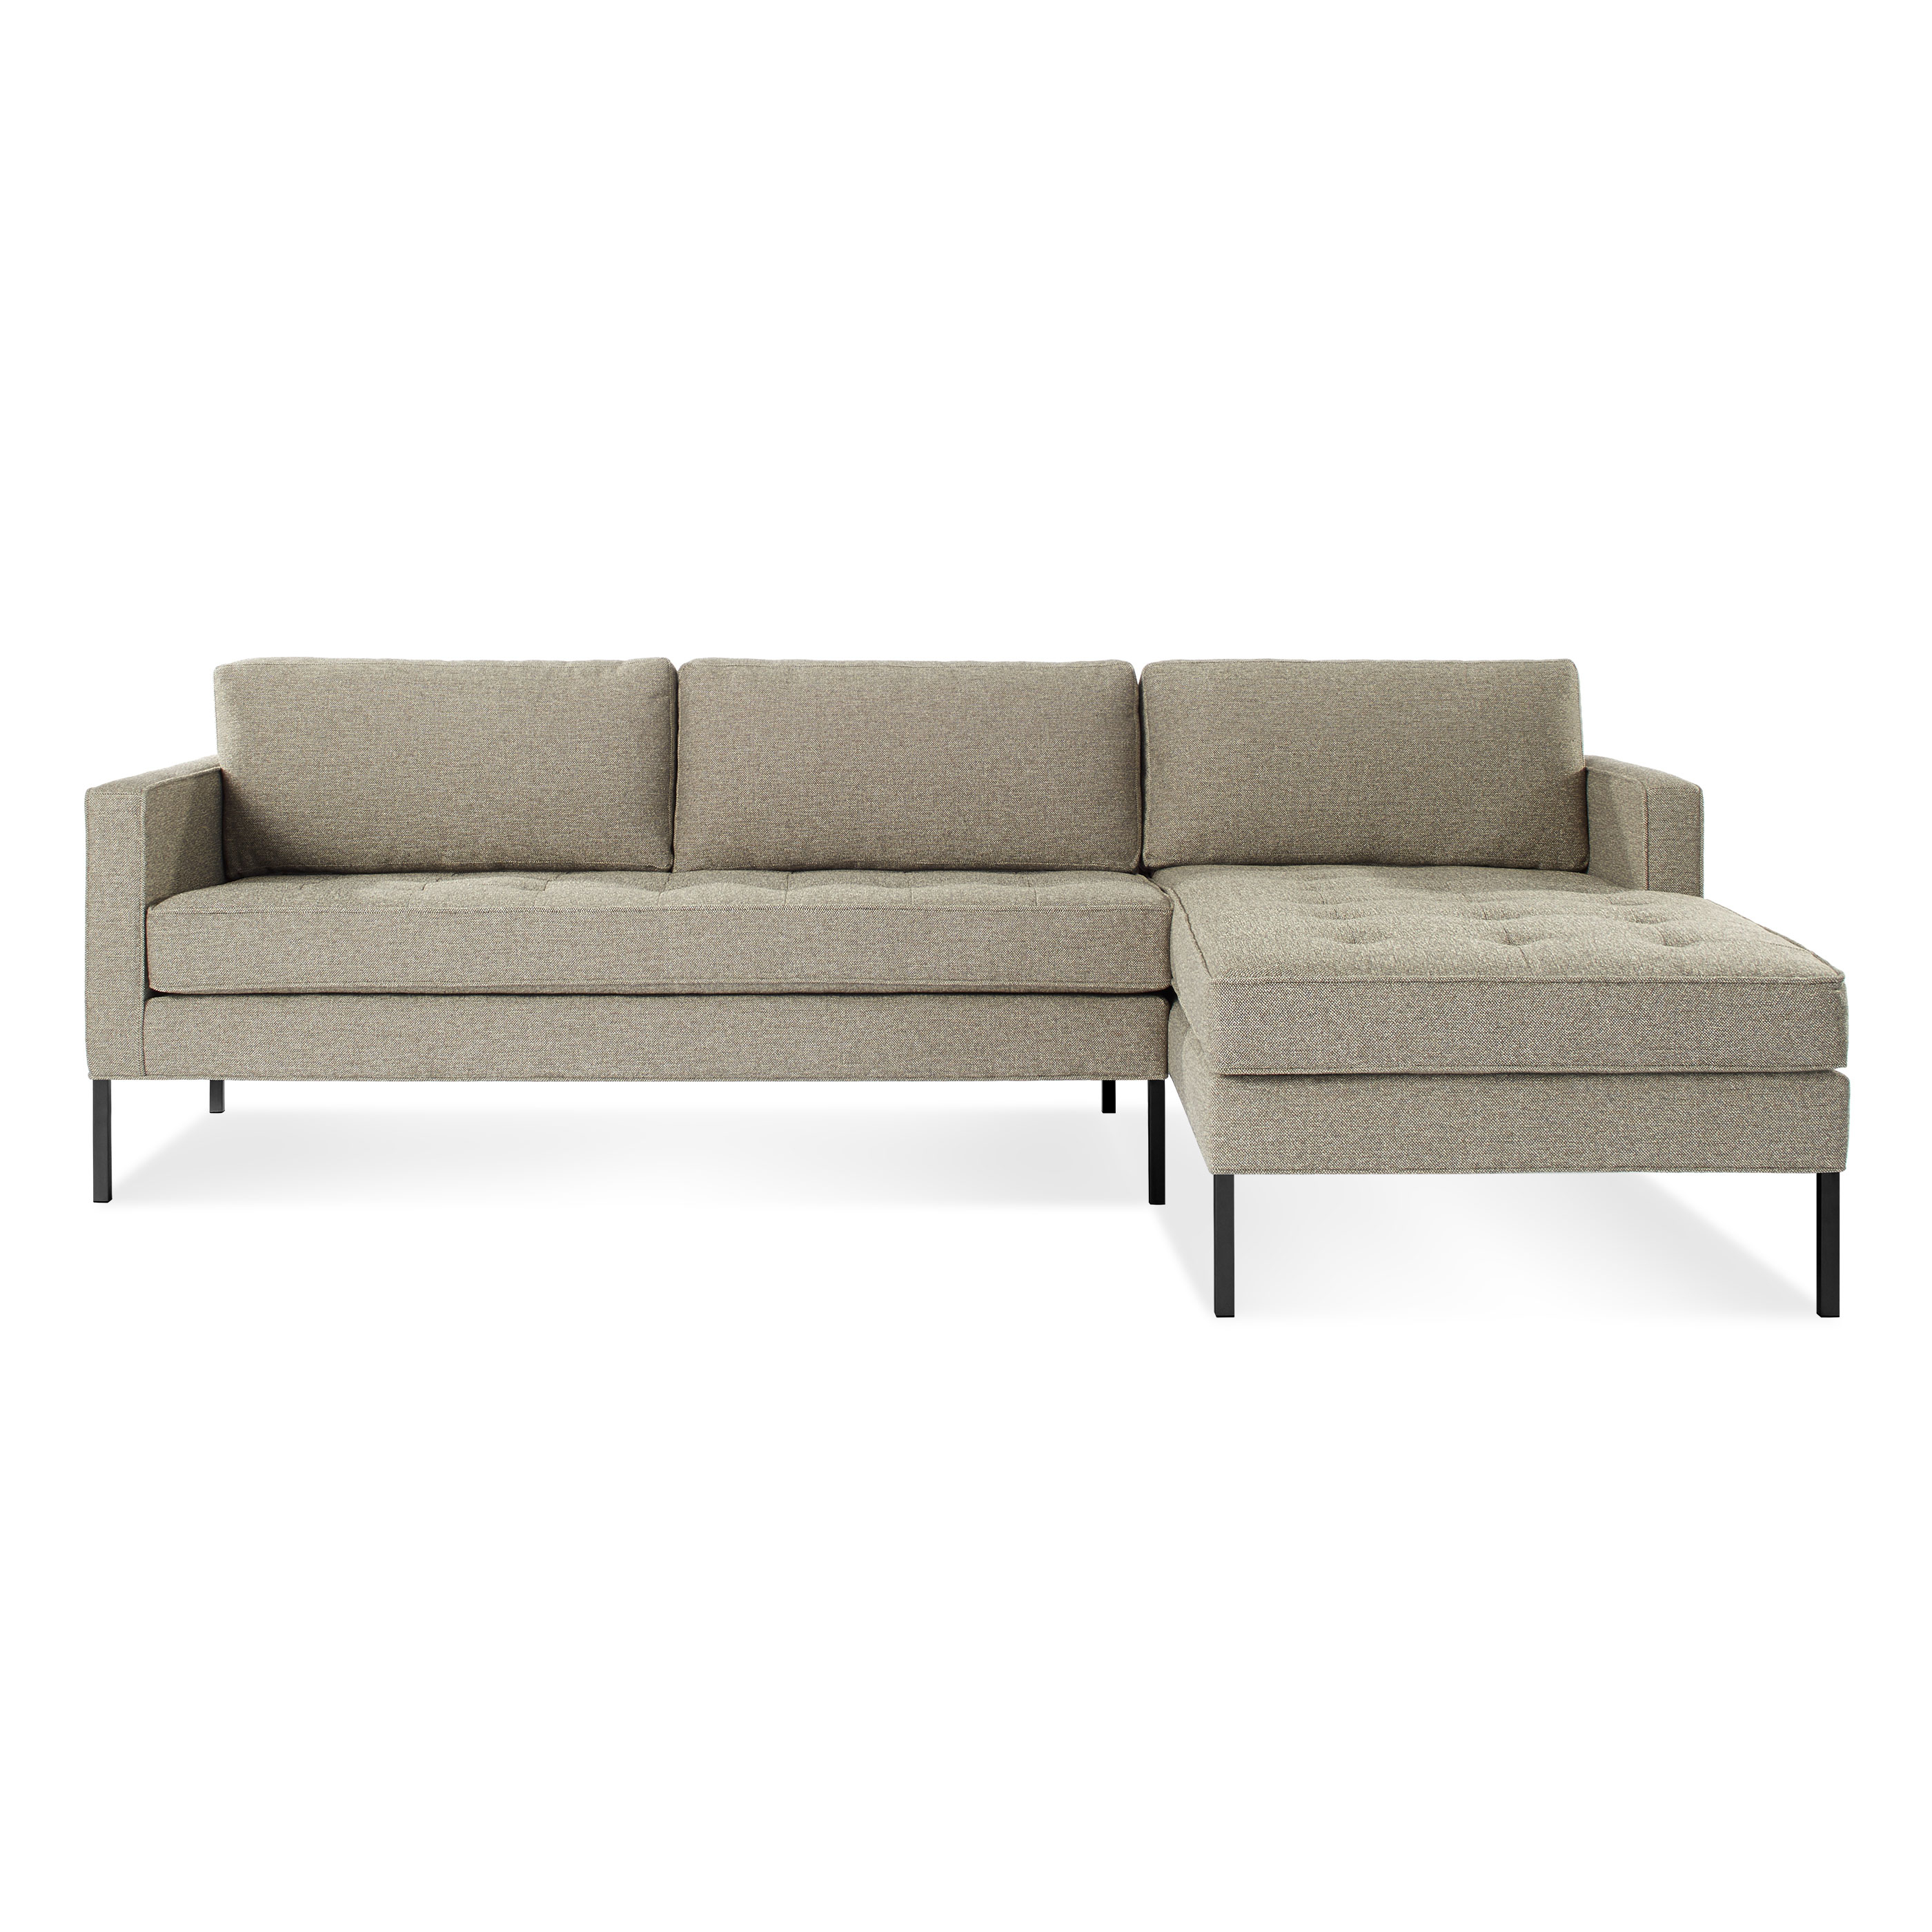 Taren Reversible Sofa/chaise Sleeper Sectionals With Storage Ottoman For Trendy Fresh Couch With Chaise Opinion – Hello (Gallery 11 of 20)